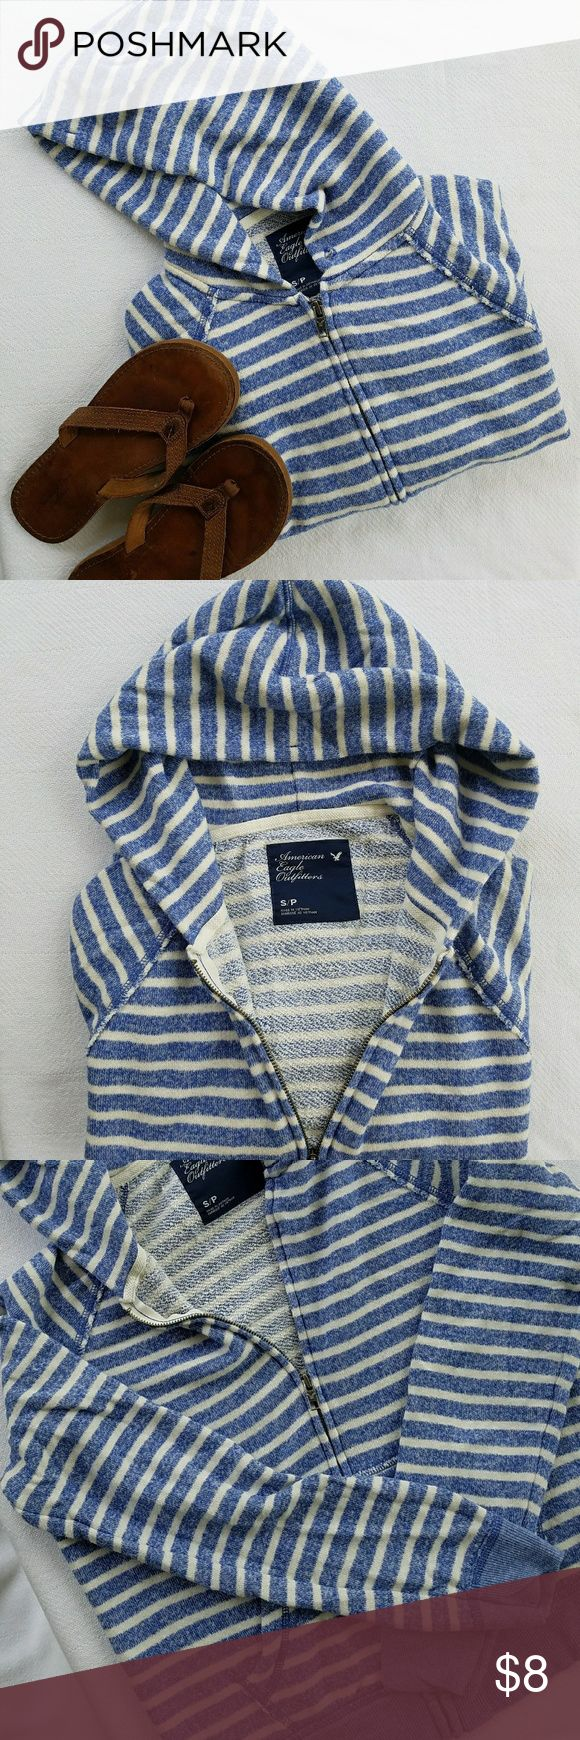 American Eagle Striped Zip Up Hoodie Size S Blue and White ultra soft striped hoodie. Only when taking photos did I notice a few small stains near the wrist on one of the arms that I tried to show in the last photo. Barely noticeable. Great hoodie for summer nights and a wonderful combination of heathered blue and white. Such a comfy hoodie that pairs well with jeans or khakis. American Eagle Outfitters Tops Sweatshirts & Hoodies